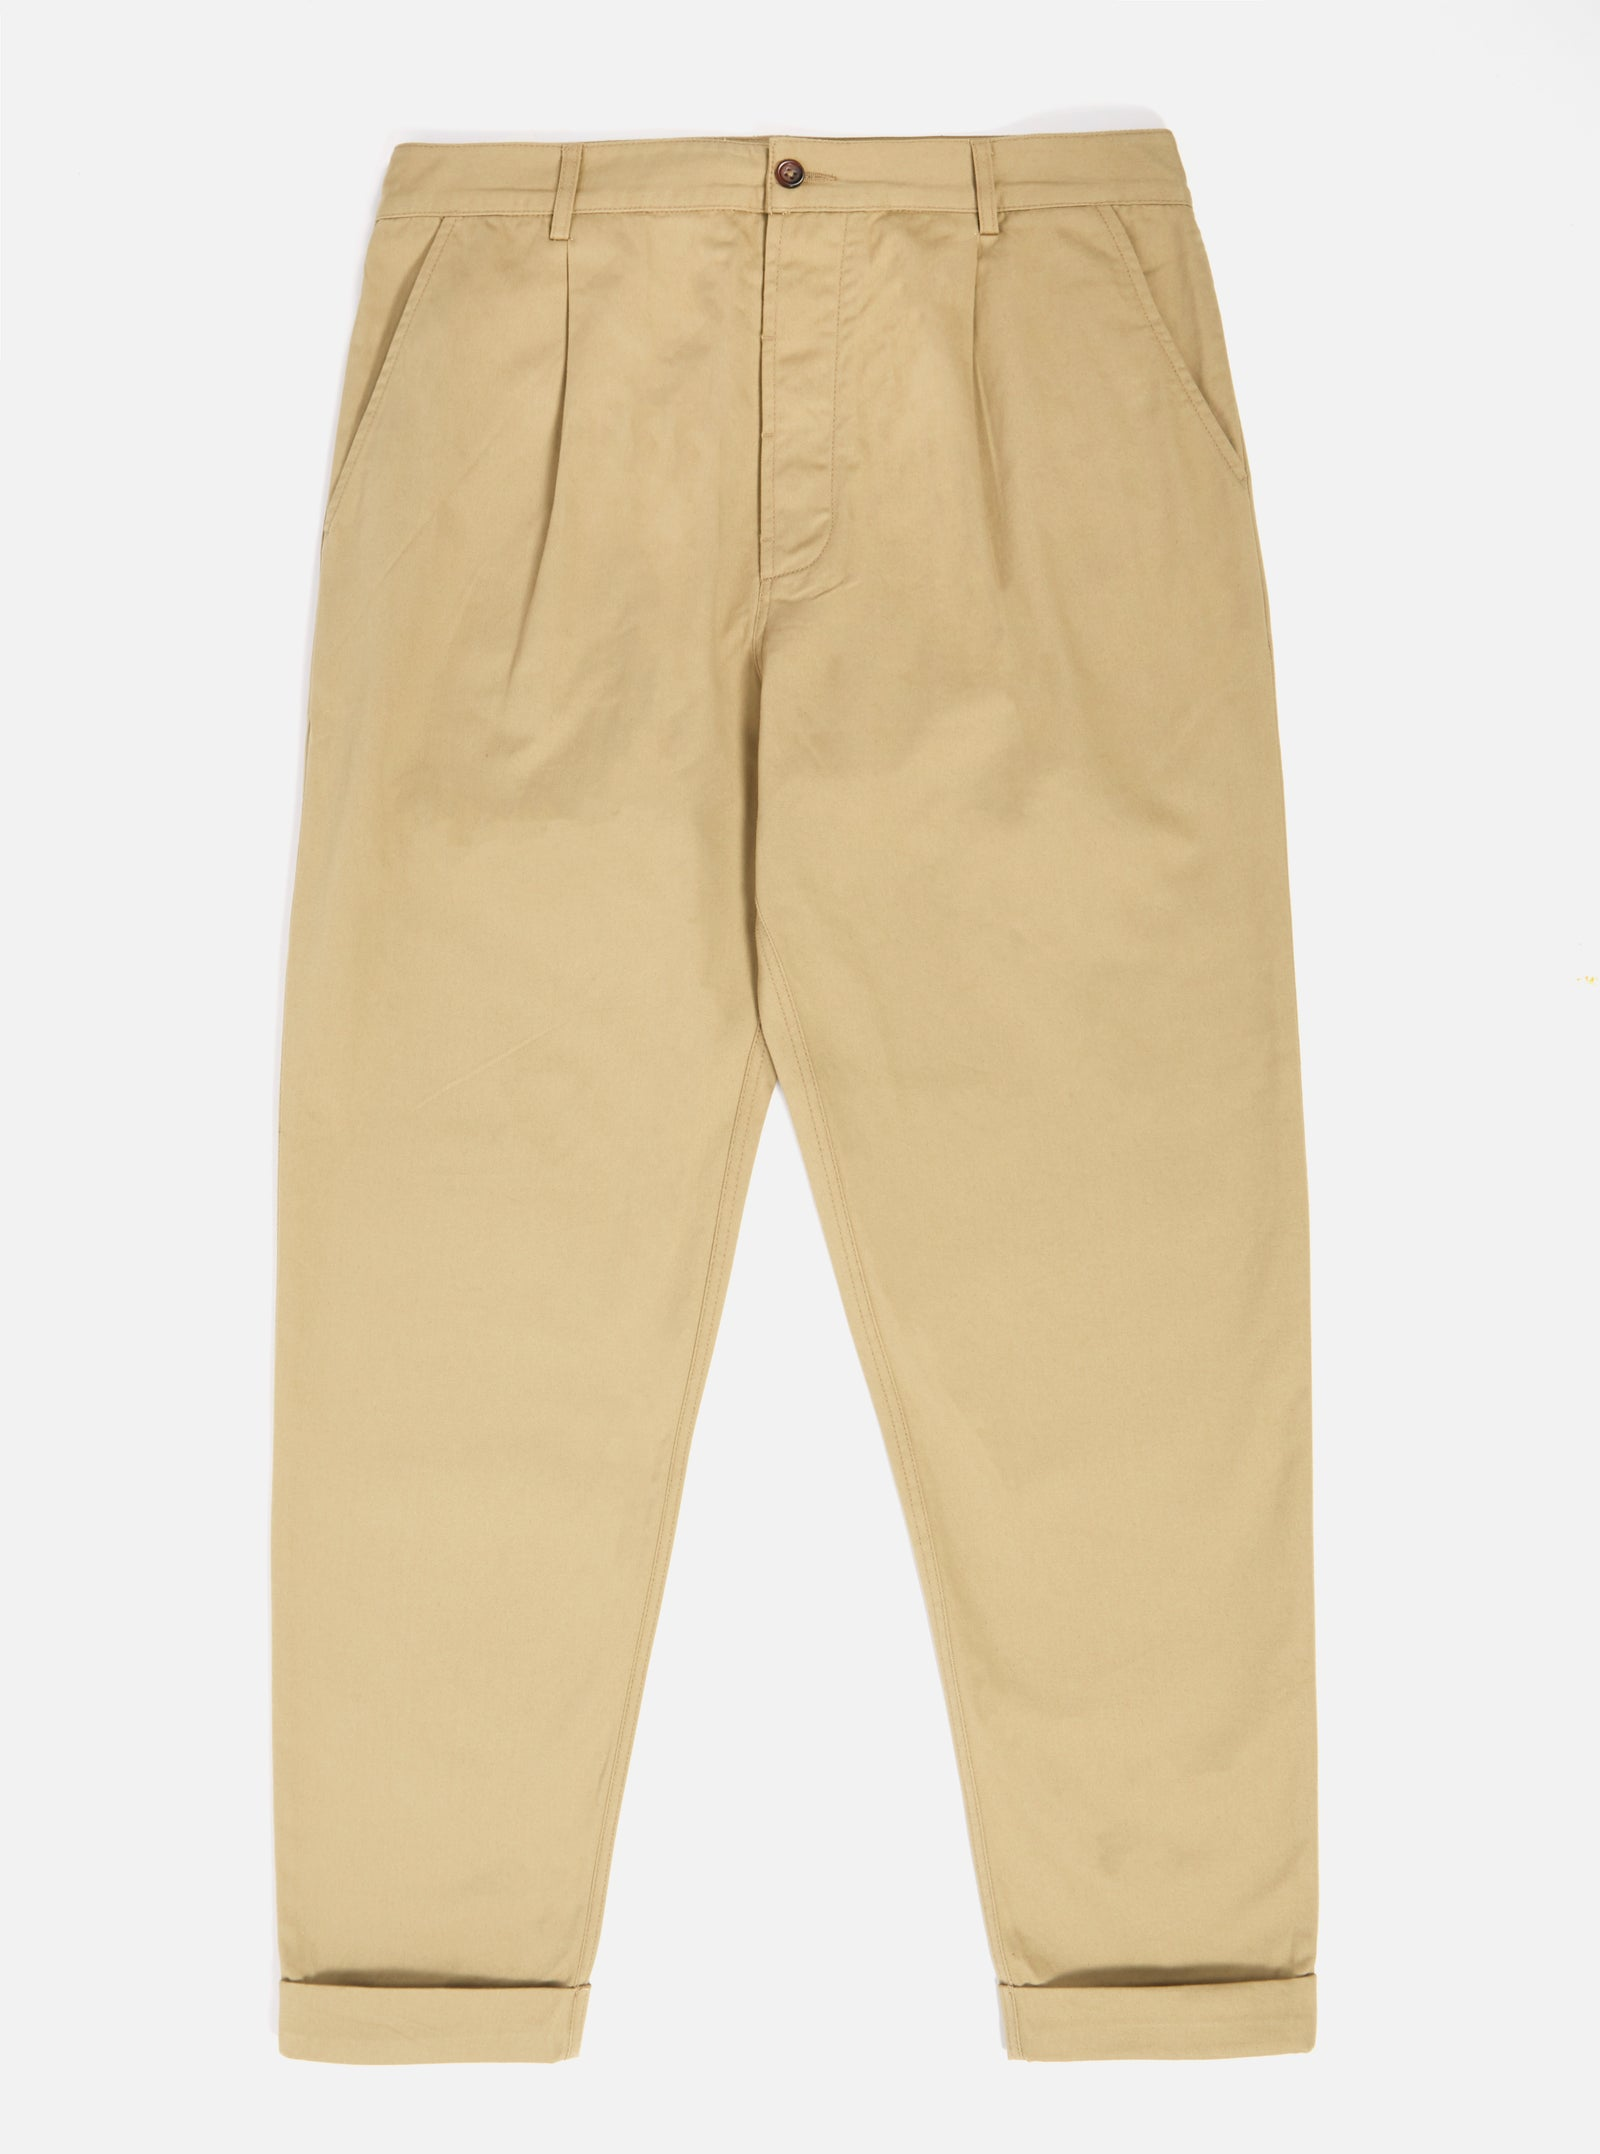 Universal Works Pleated Pant in Sand Twill